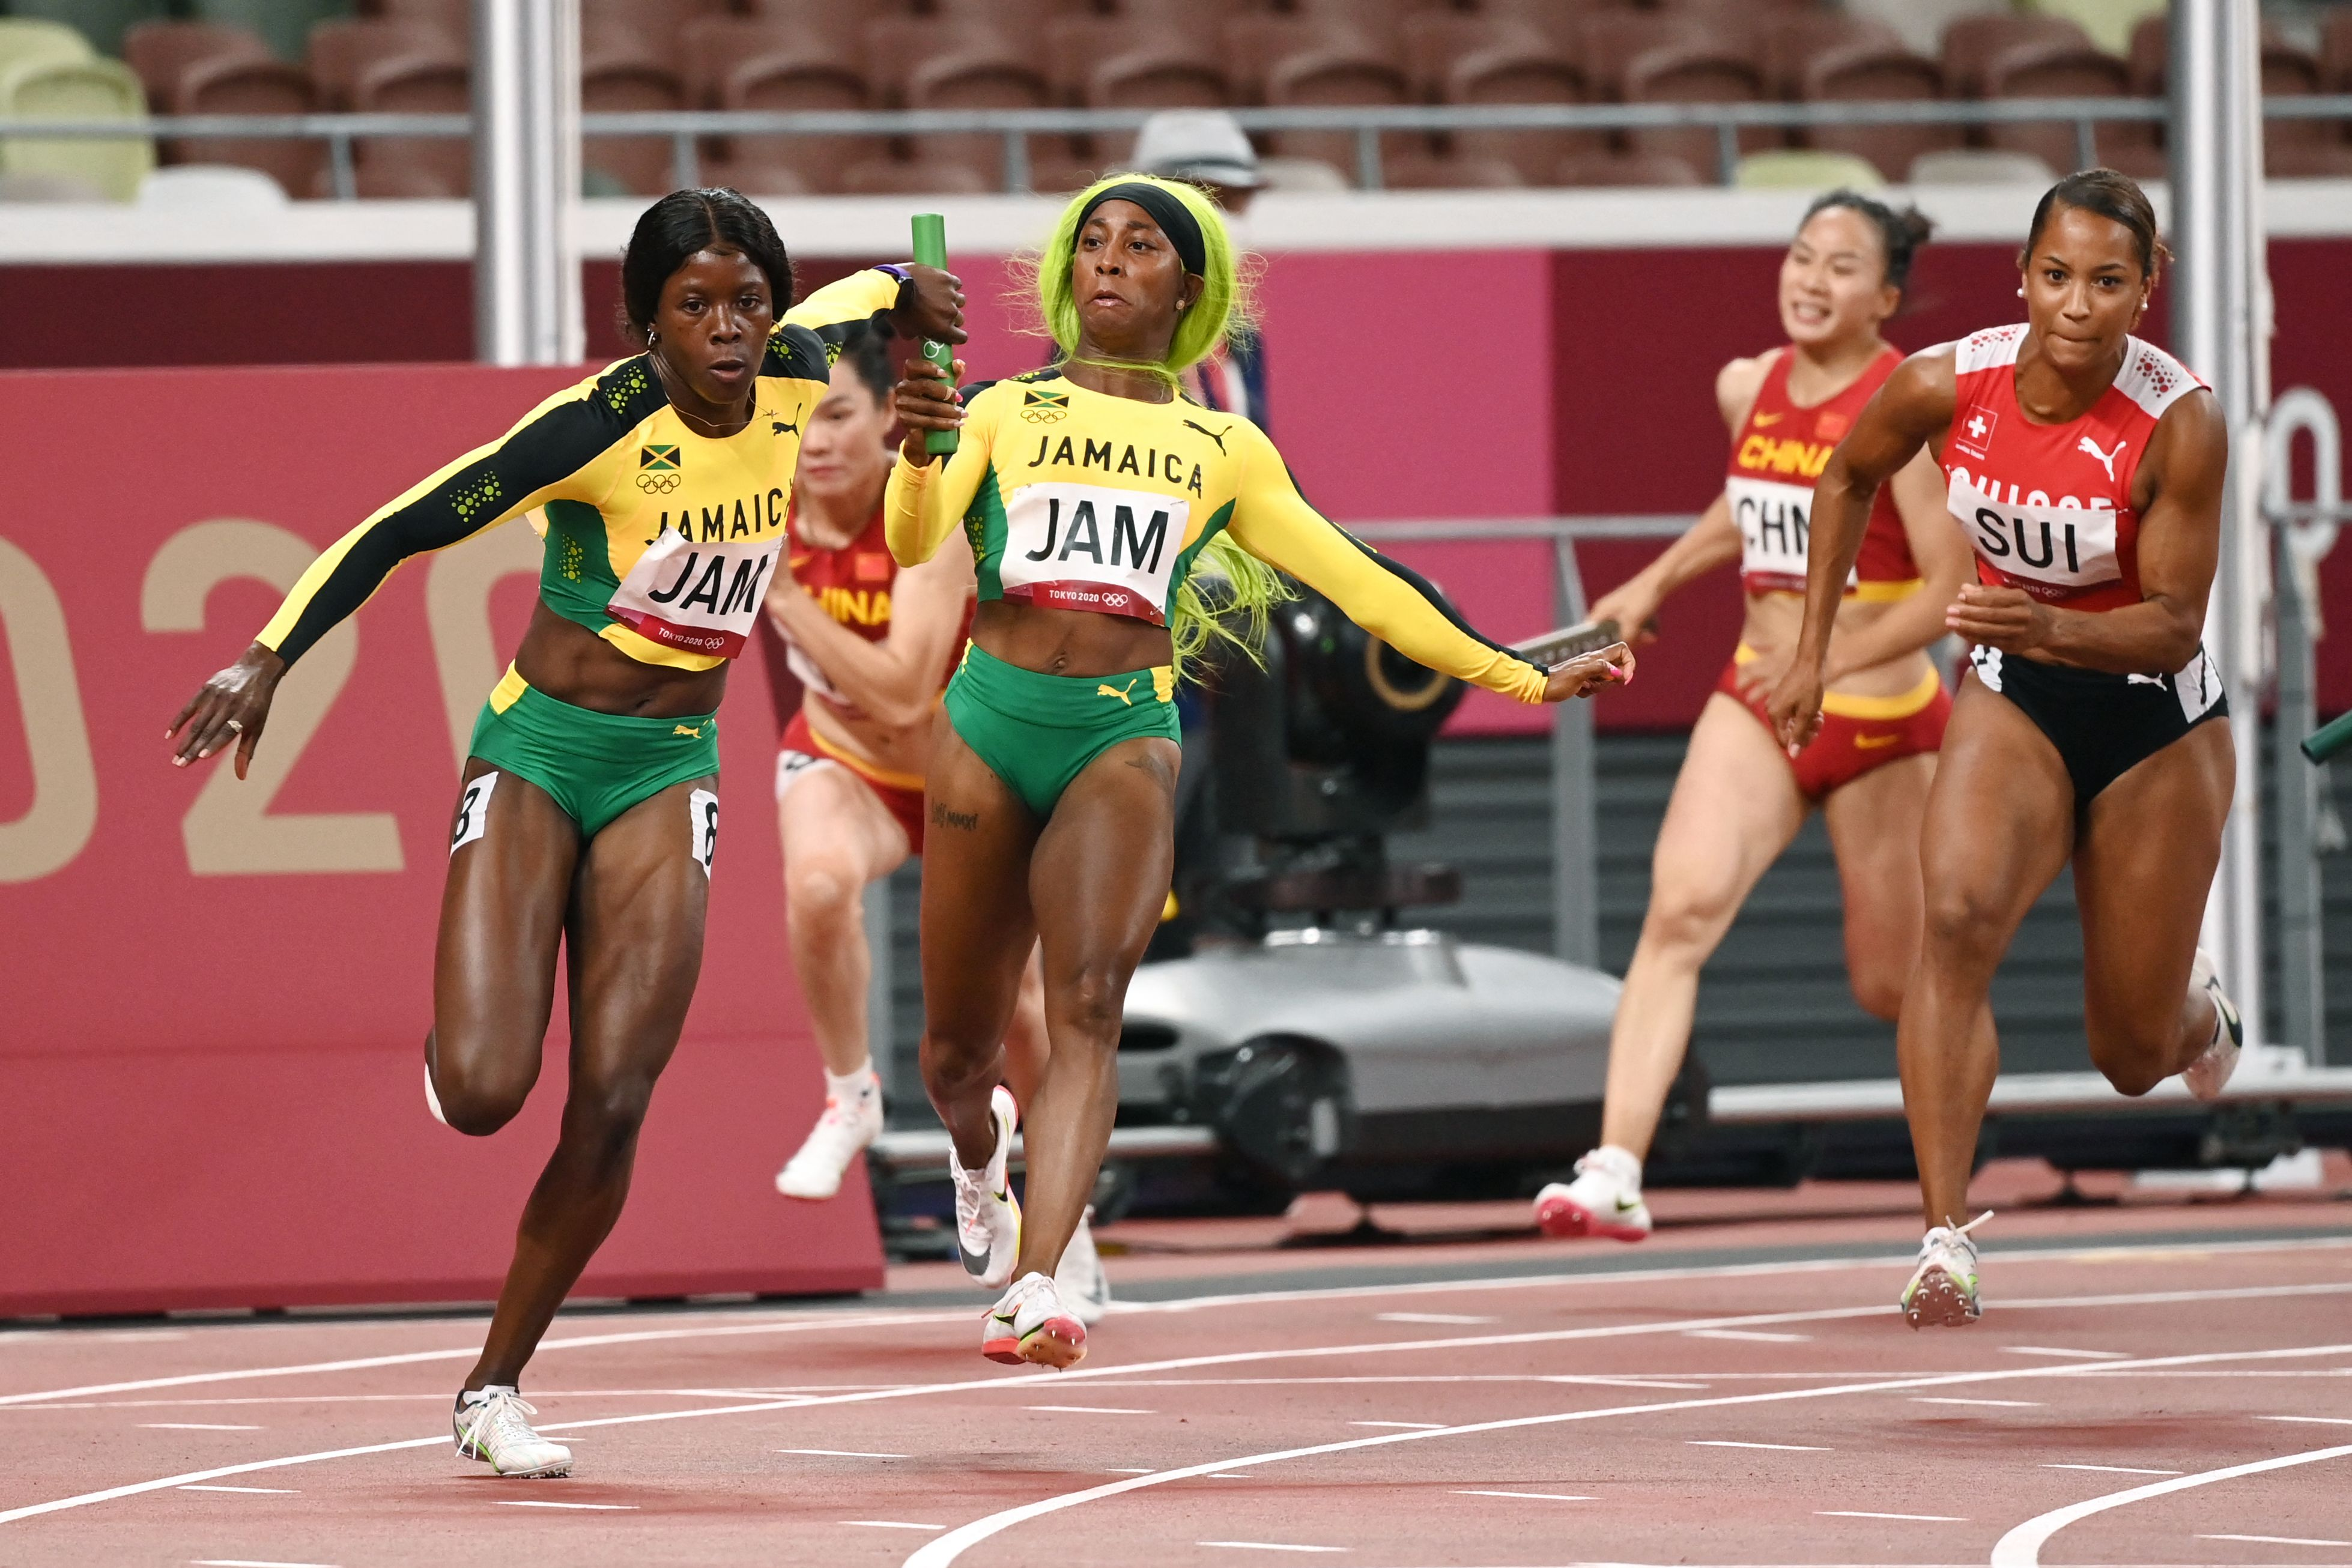 Jamaica's Shelly-Ann Fraser-Pryce (R) passes the baton to Jamaica's Shericka Jackson during the women's 4x100m relay final during the Tokyo 2020 Olympic Games at the Olympic Stadium in Tokyo on August 6, 2021.